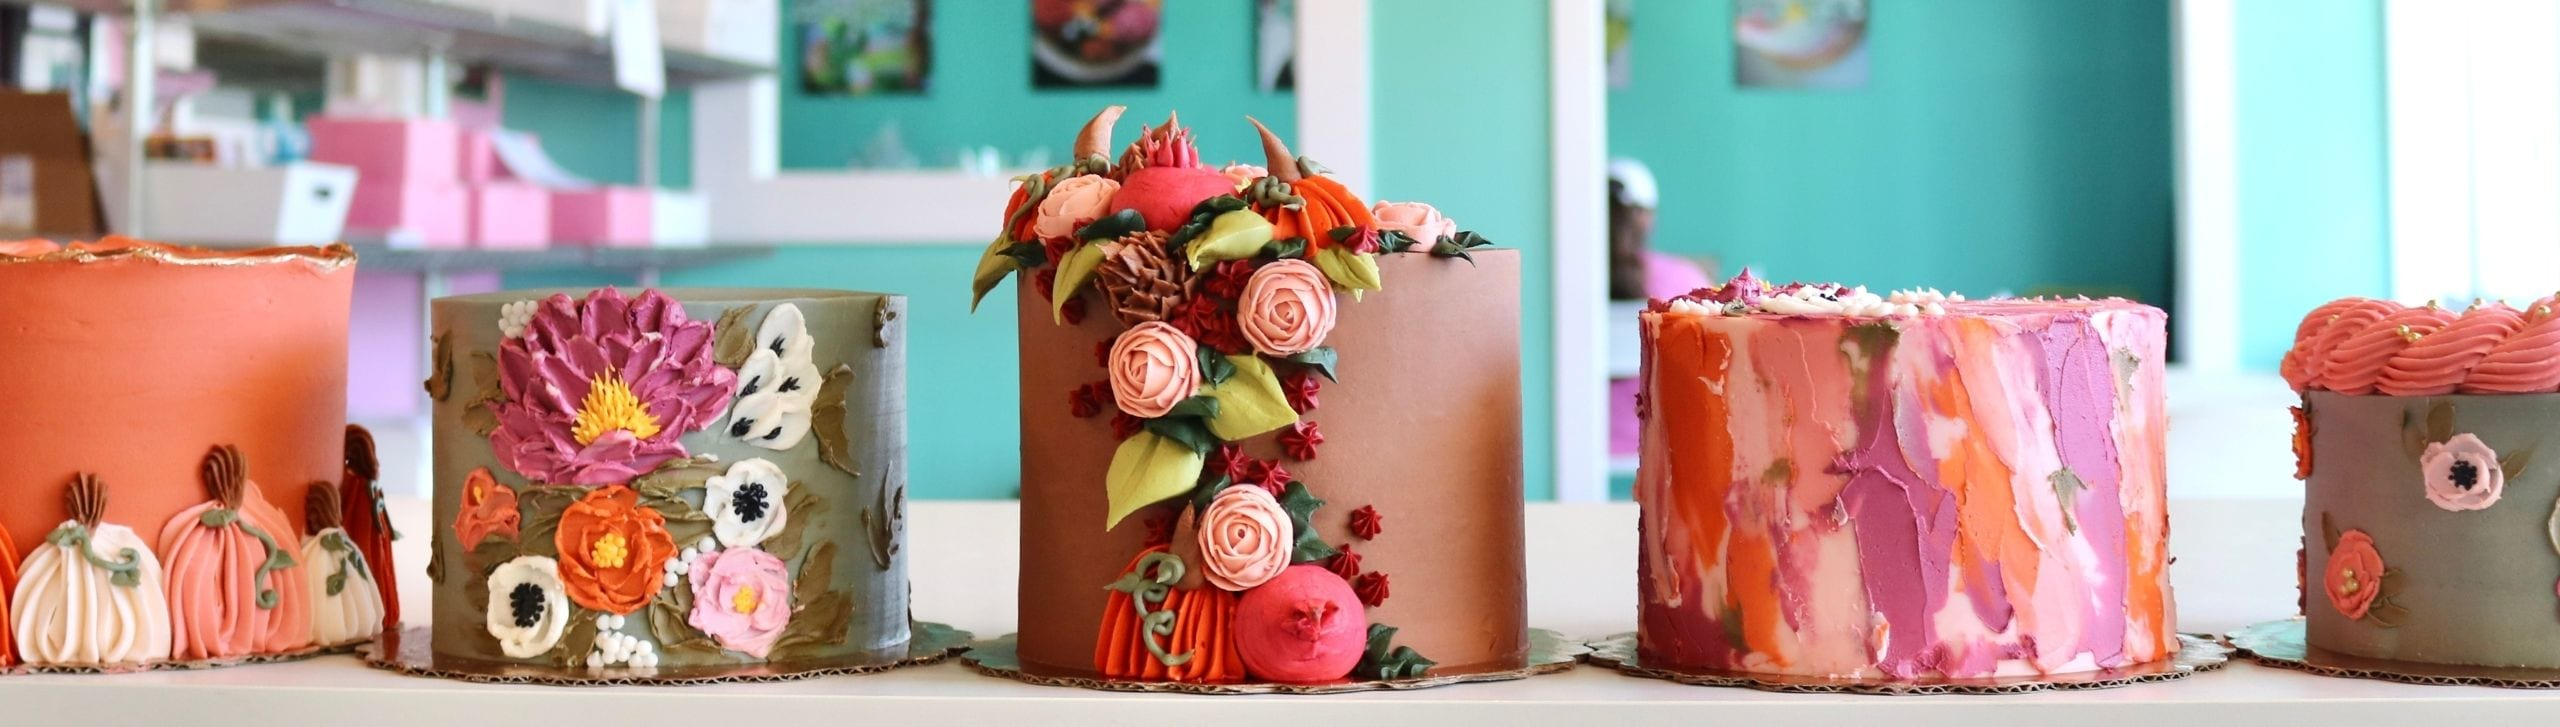 Floral Cakes | 3 Sweet Girls Cakery